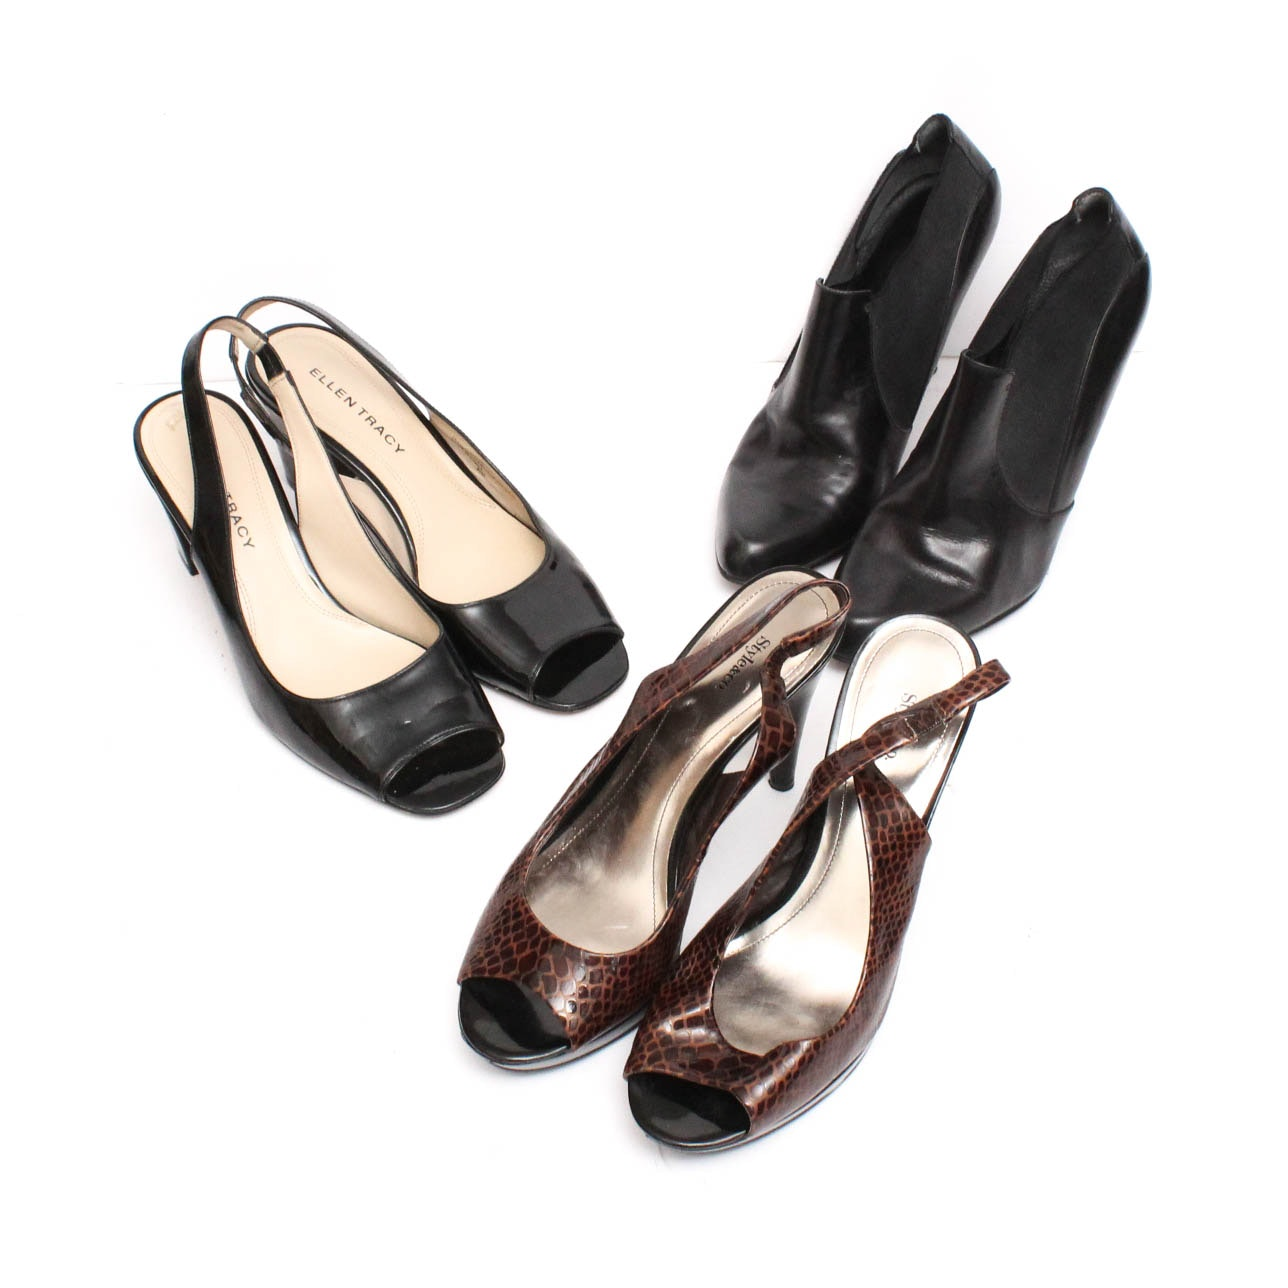 High-Heeled Leather Slingbacks and Booties Featuring Nine West and Ellen Tracy